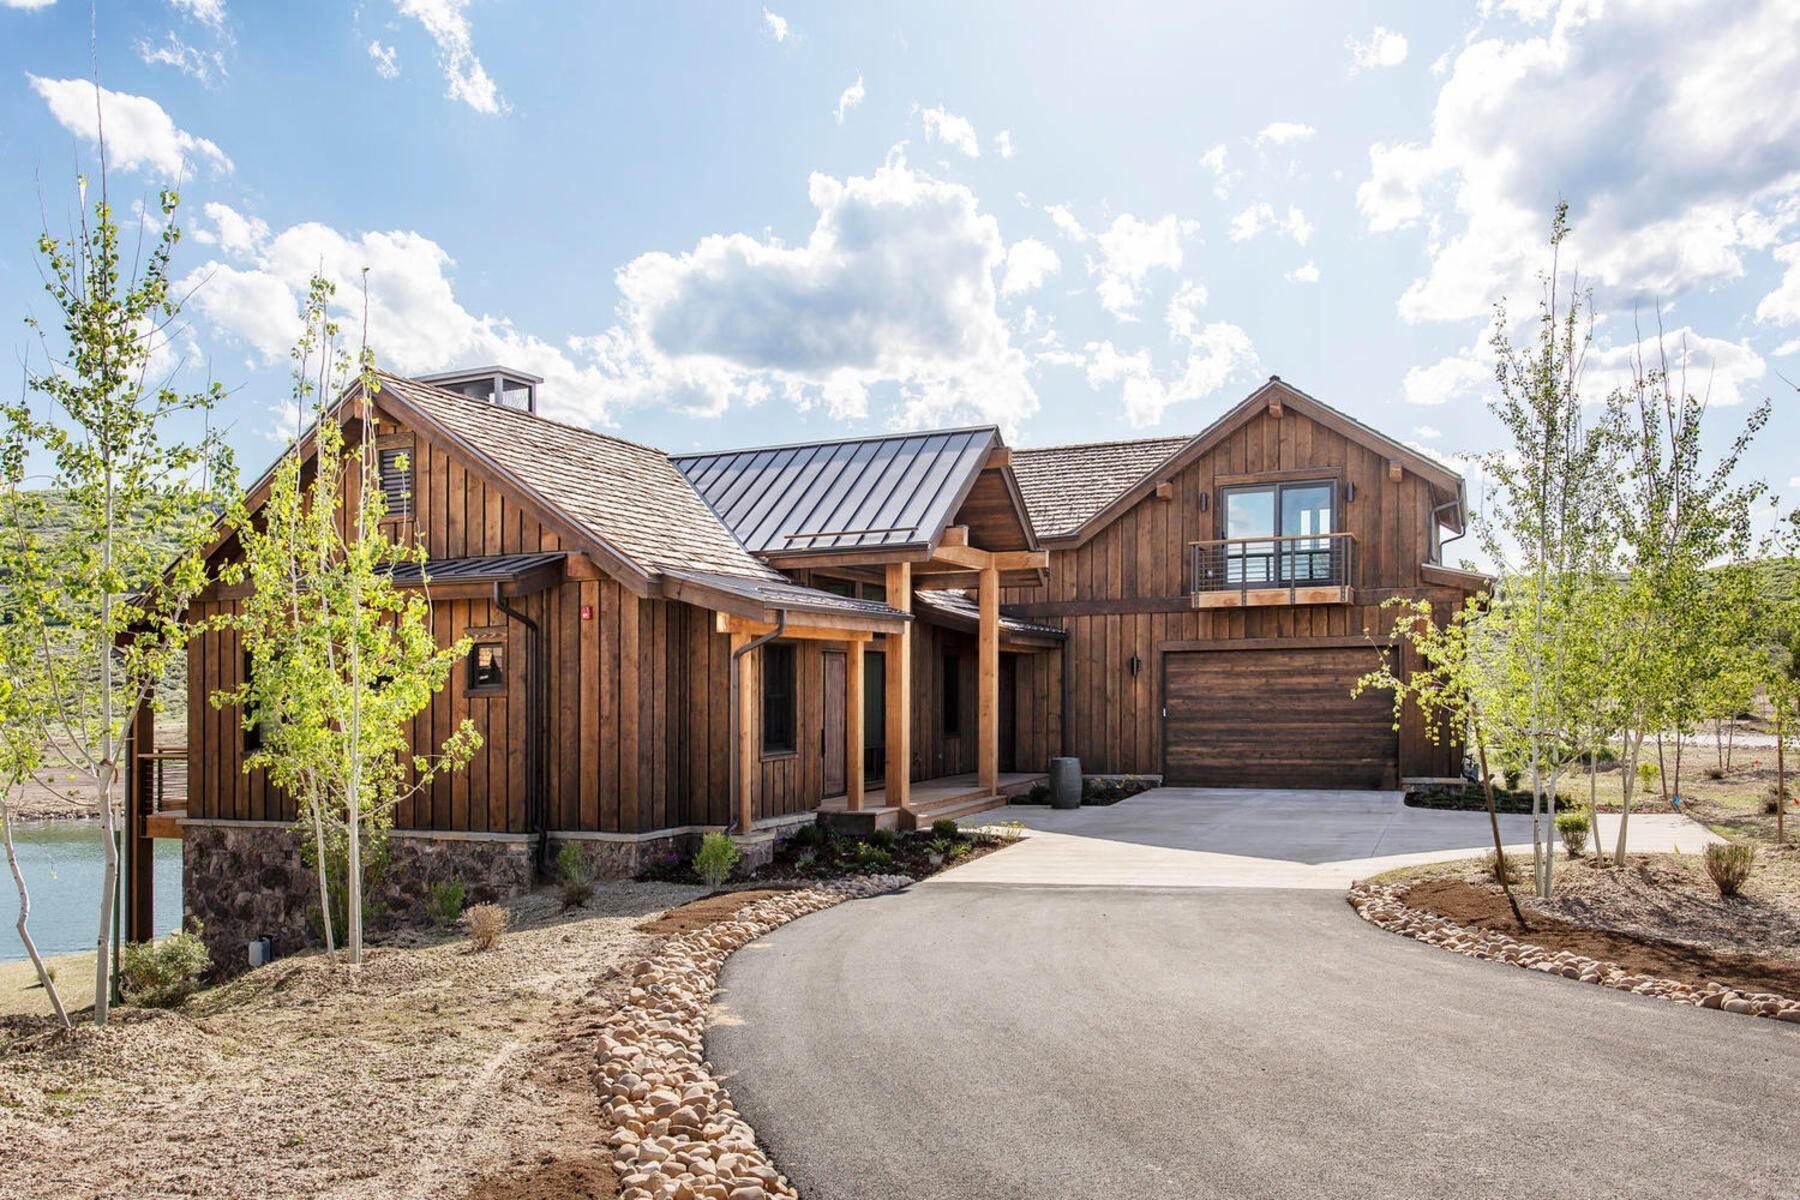 Single Family Homes for Sale at 5 Bedroom Expanded Juniper Cabin at Victory Ranch on 2.3 Acres! 6434 Whispering Way, #373A Heber City, Utah 84093 United States